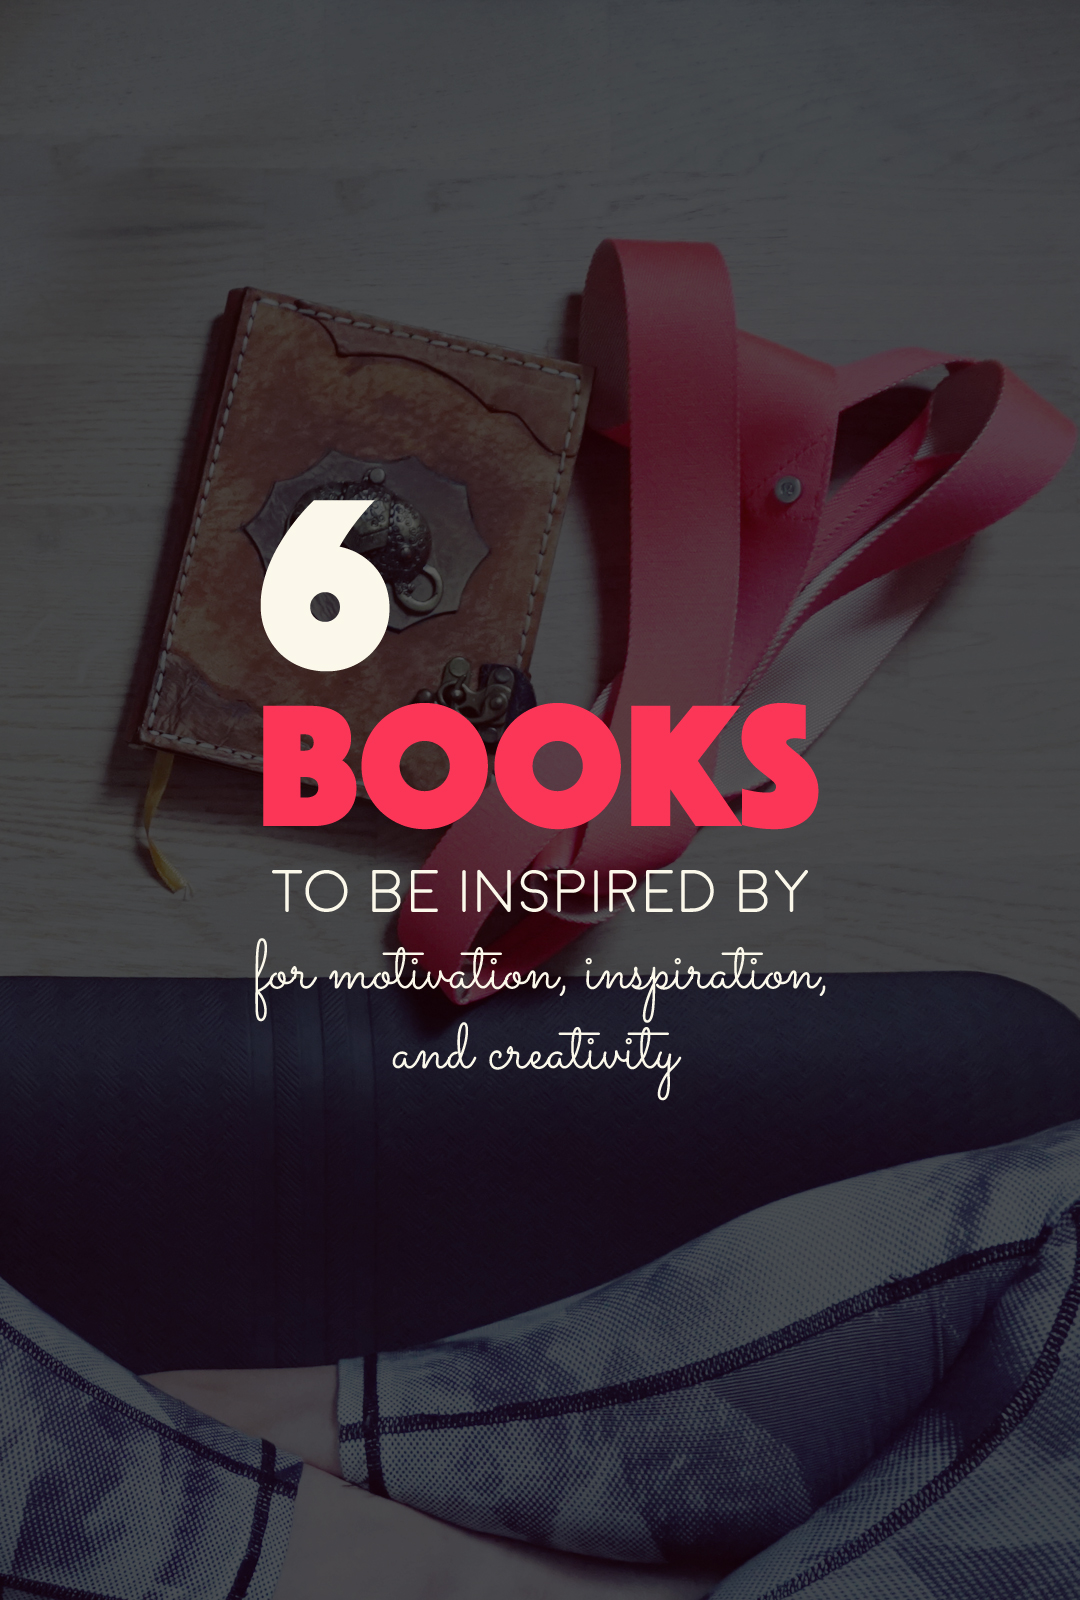 6 Books to Be Inspired By | http://BananaBloom.com #inspiration #dreams #books